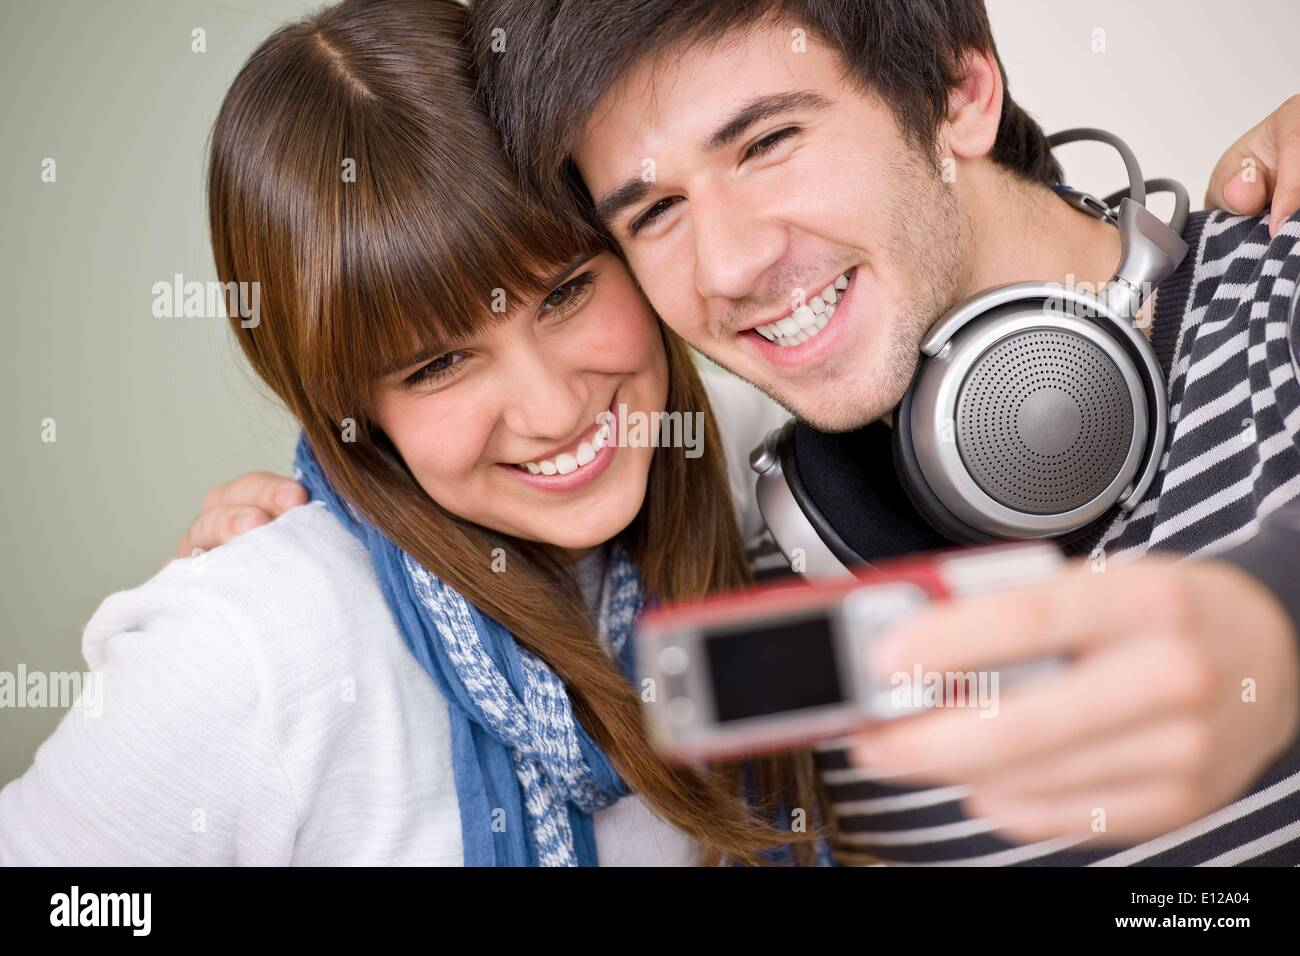 Apr. 17, 2010 - April 17, 2010 - Students - happy smiling teenage couple taking photo with camera - Stock Image